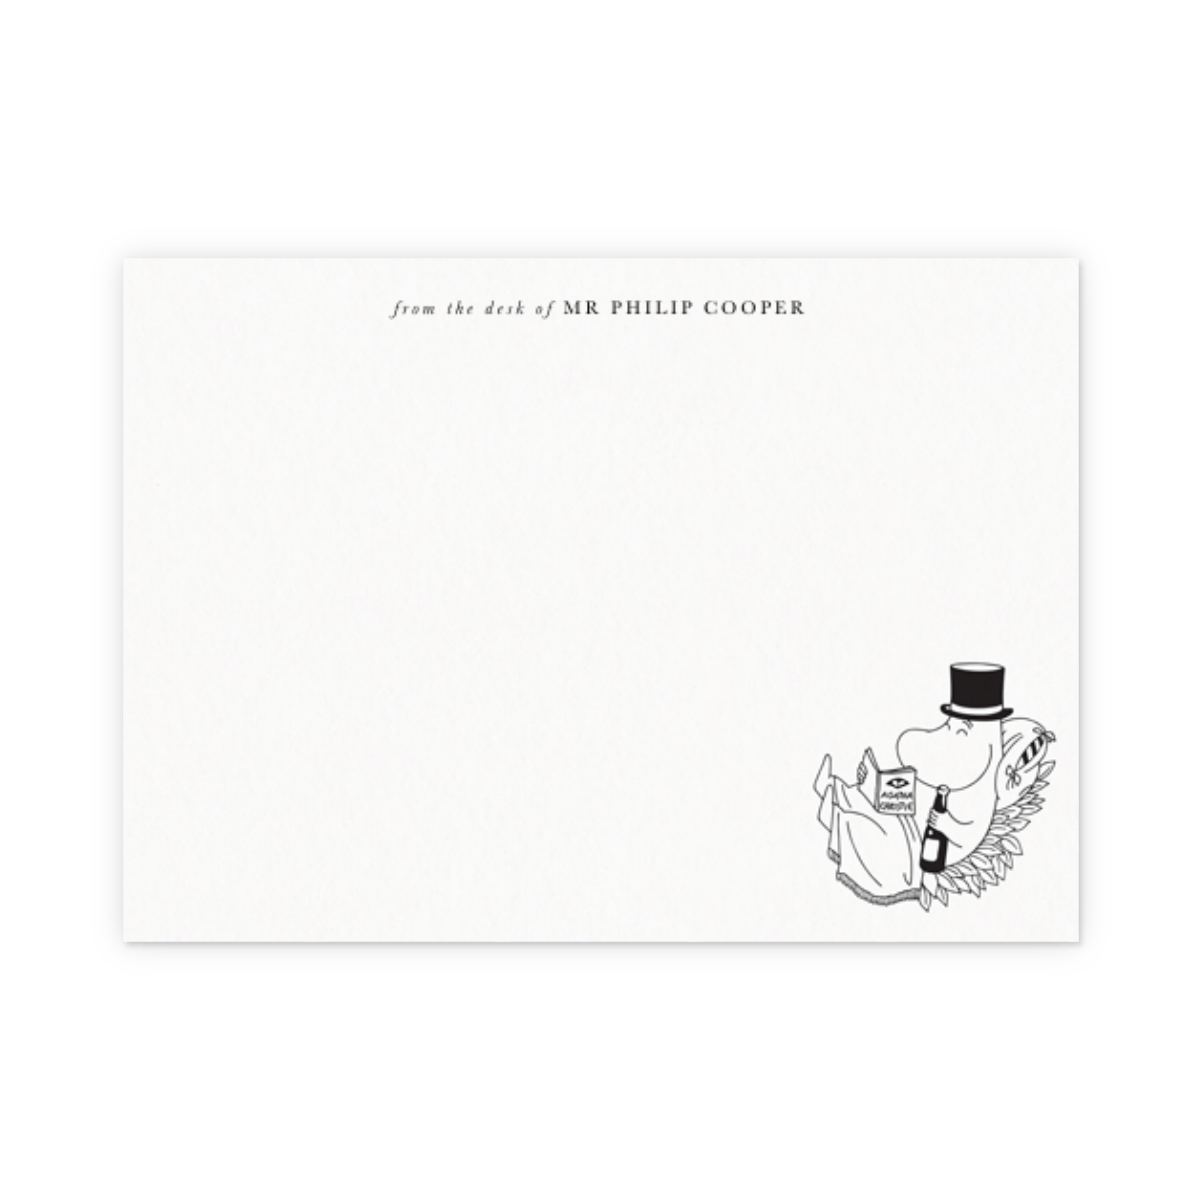 Https%3a%2f%2fwww.papier.com%2fproduct image%2f22102%2f10%2fhammock moominpappa 5561 front 1553633724.png?ixlib=rb 1.1